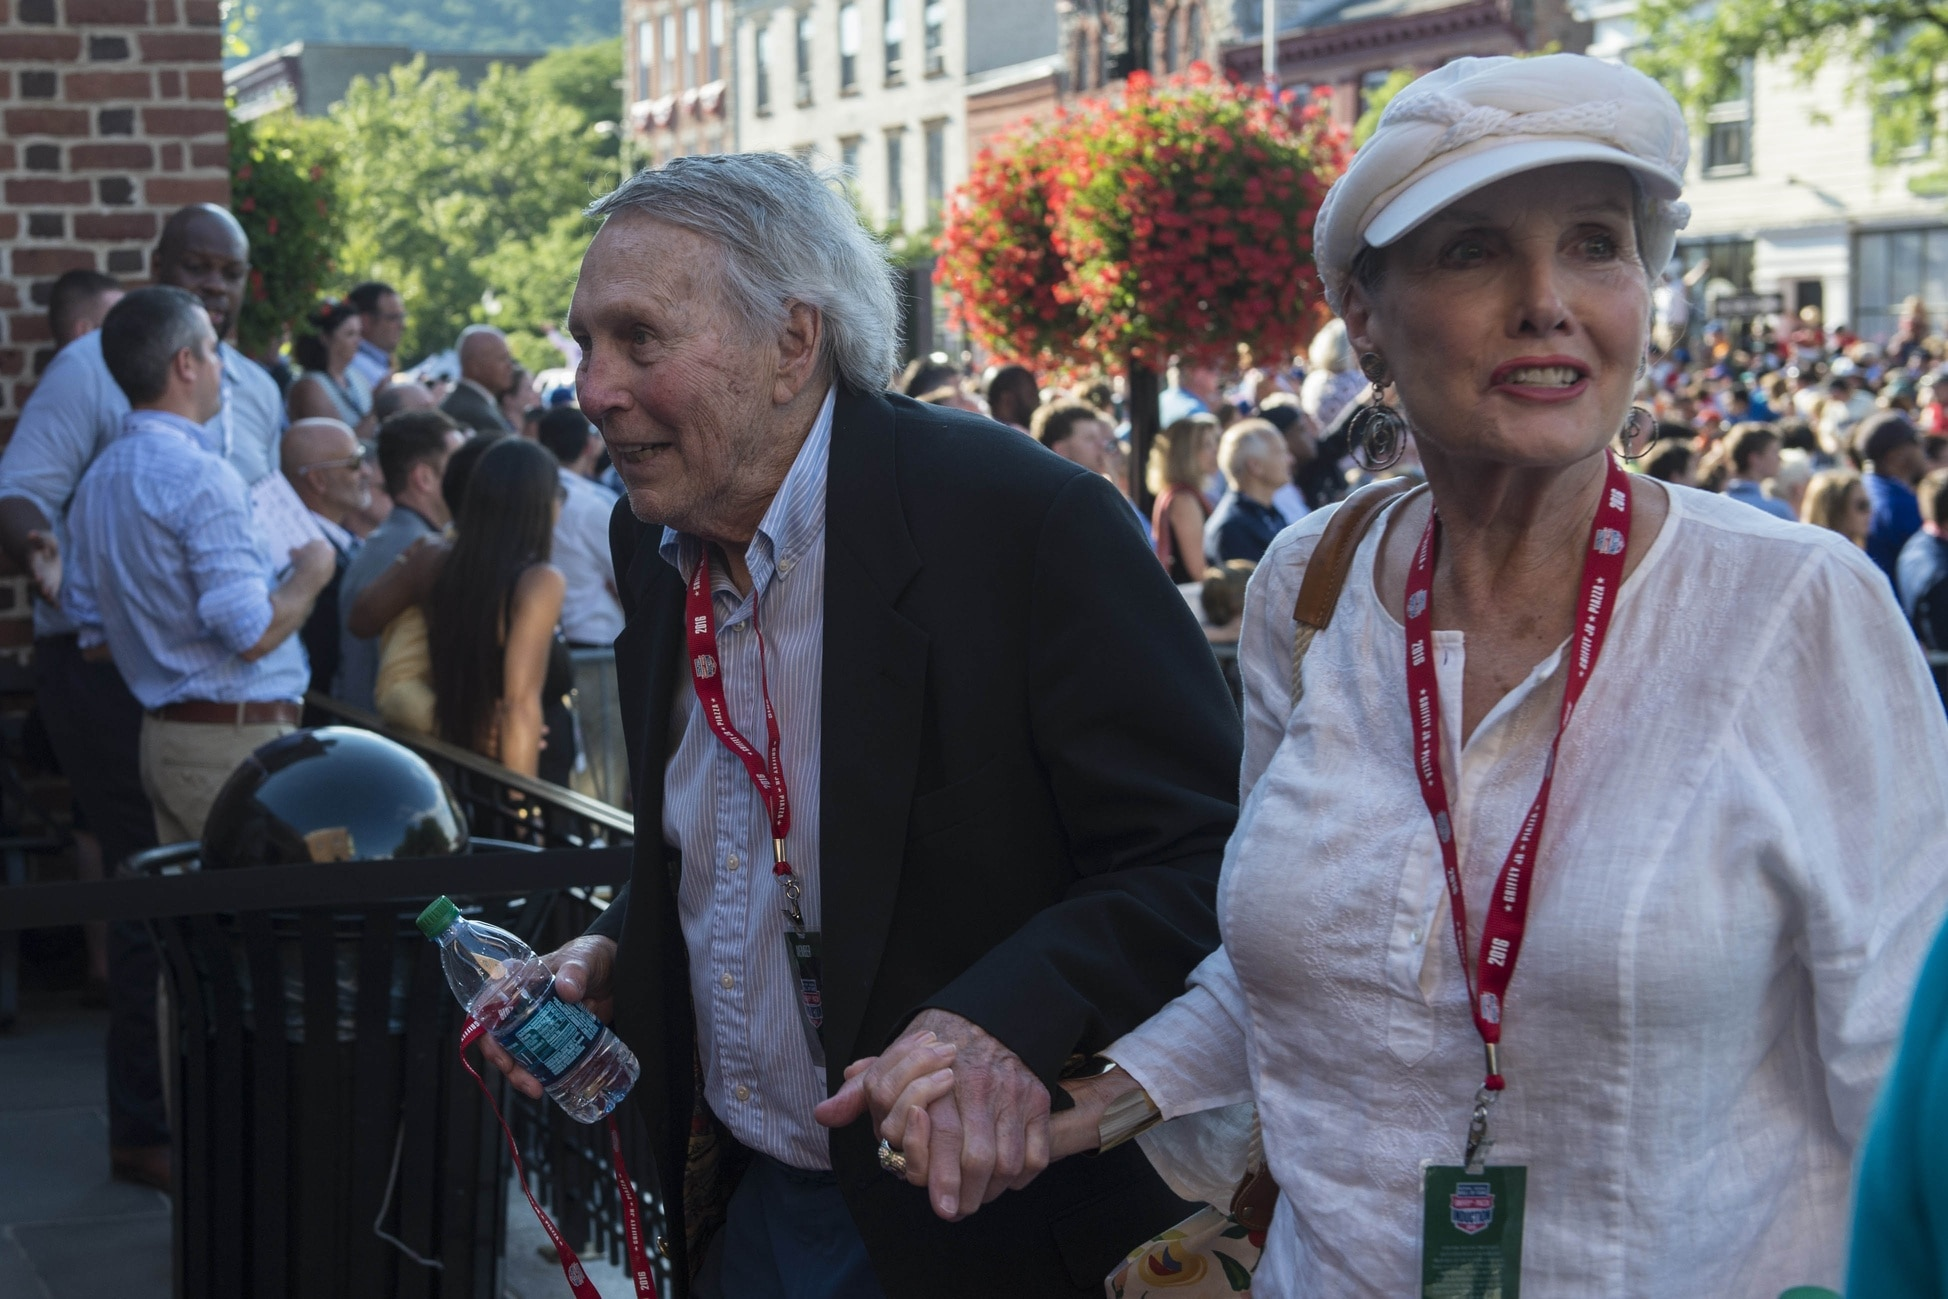 Caption: Jul 23, 2016; Cooperstown, NY, USA; Hall of Famer Brooks Robinson and his wife arrive at National Baseball Hall of Fame during the MLB baseball hall of fame parade of legends. Mandatory Credit: Gregory J. Fisher-USA TODAY Sports